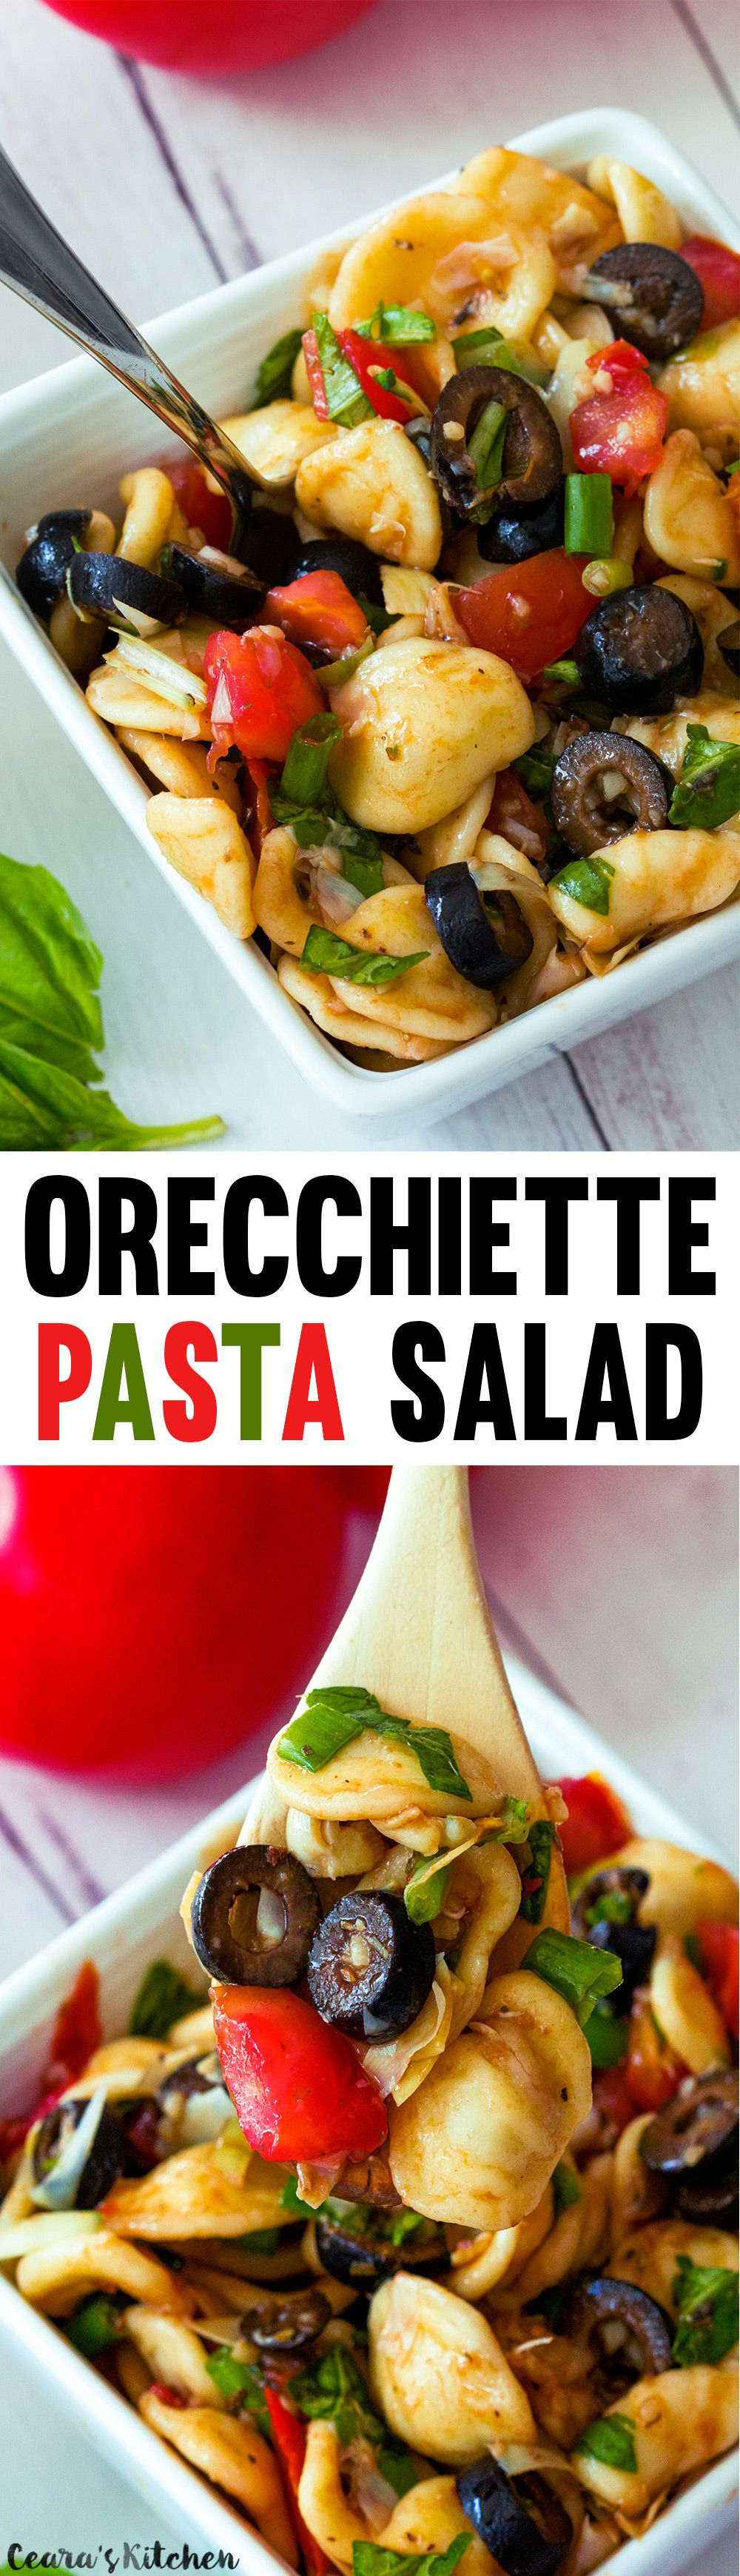 #Healthy Orecchiette Pasta Salad with Basil, Olives and Tomatoes. #Vegan #Summer #Salad